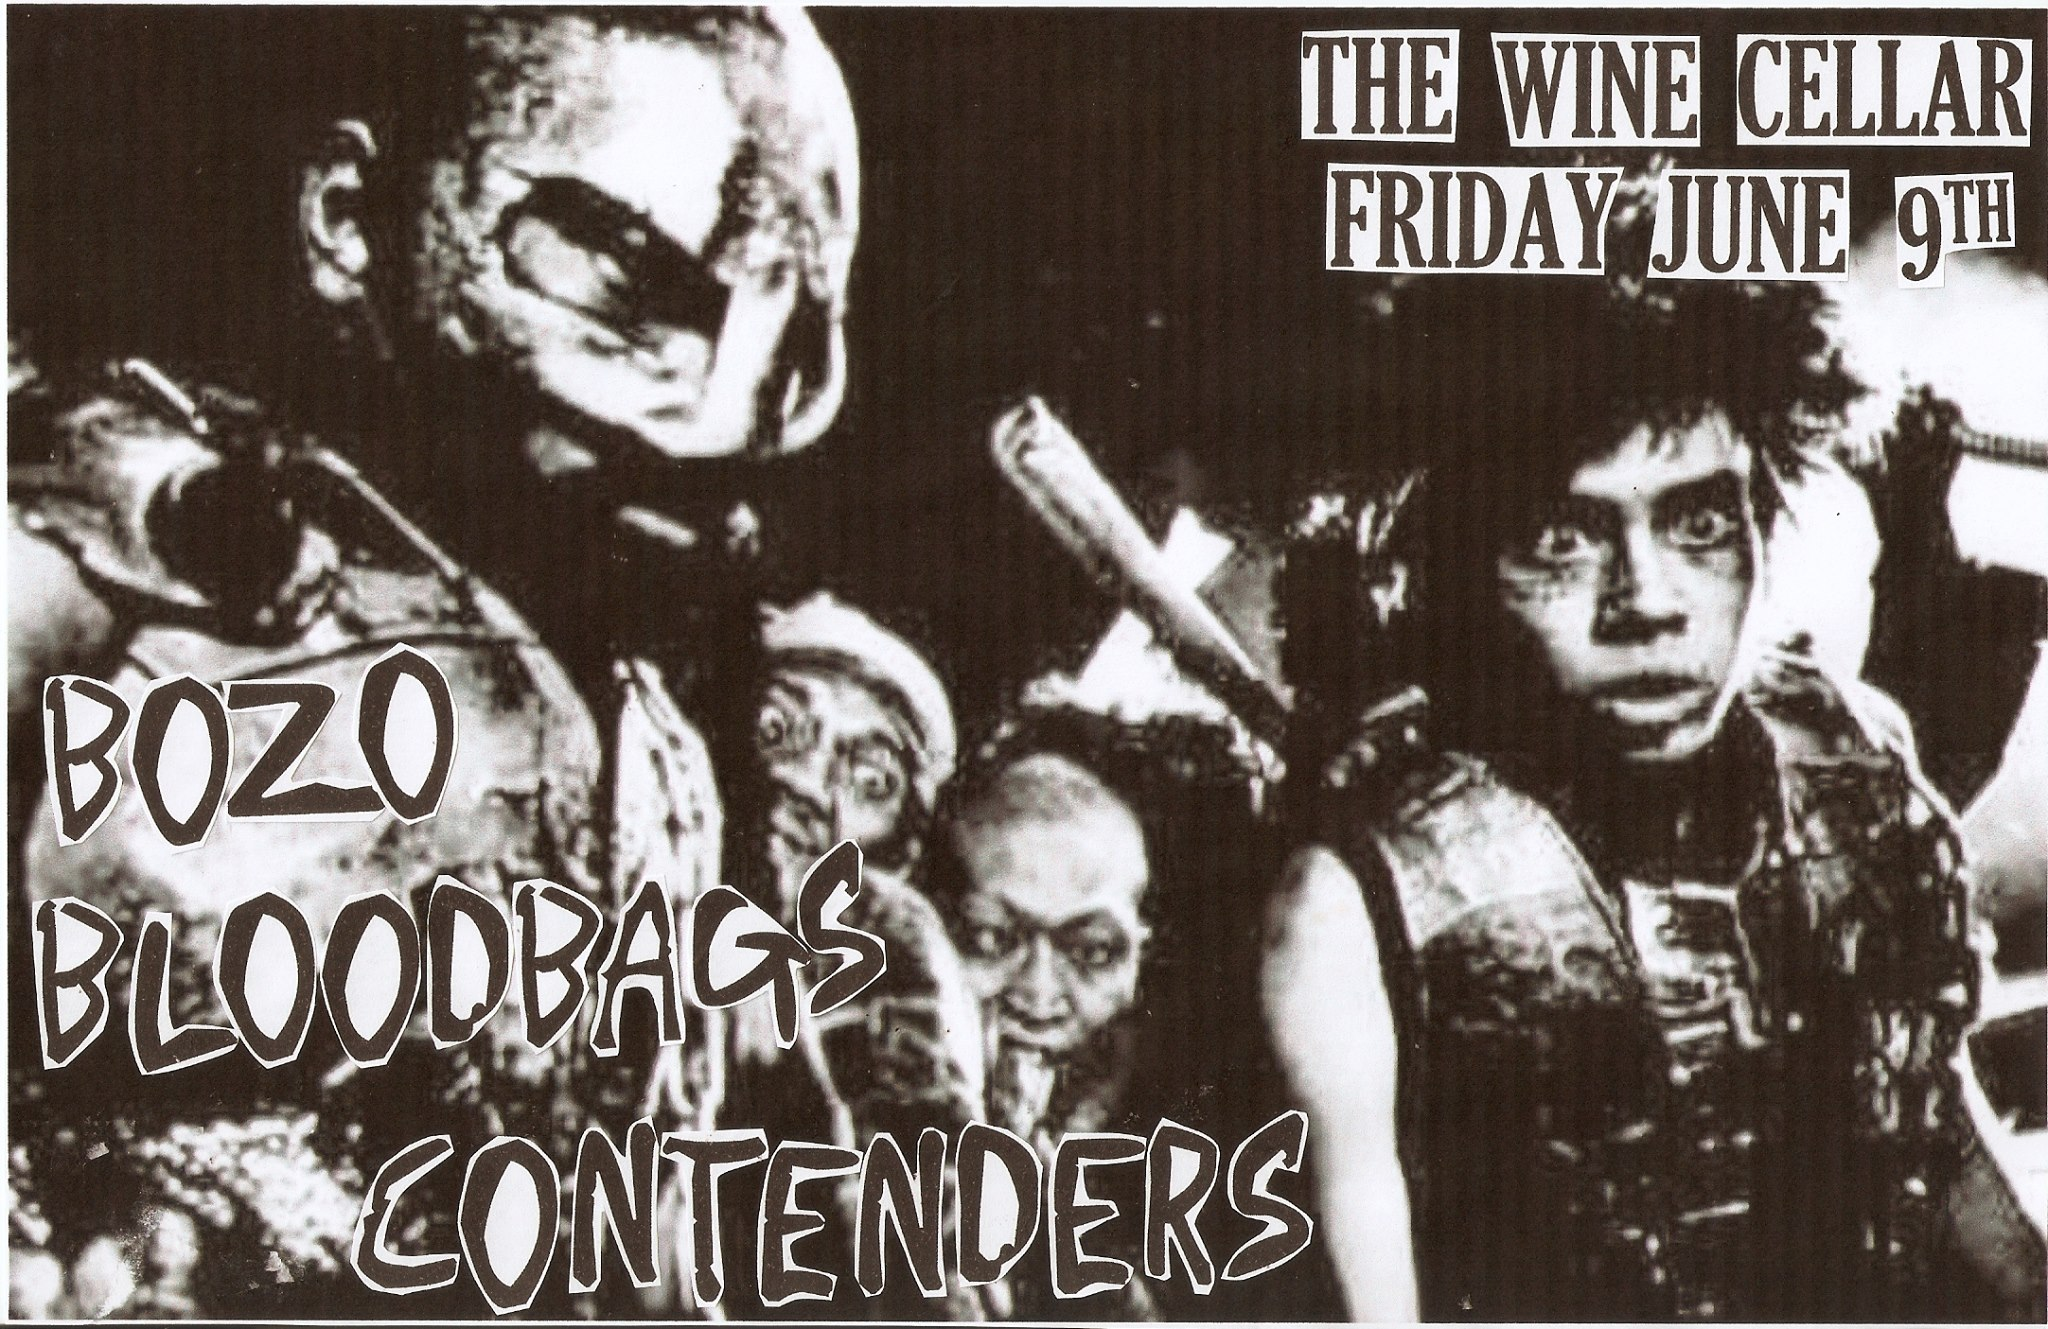 Bozo, Bloodbags and Contenders